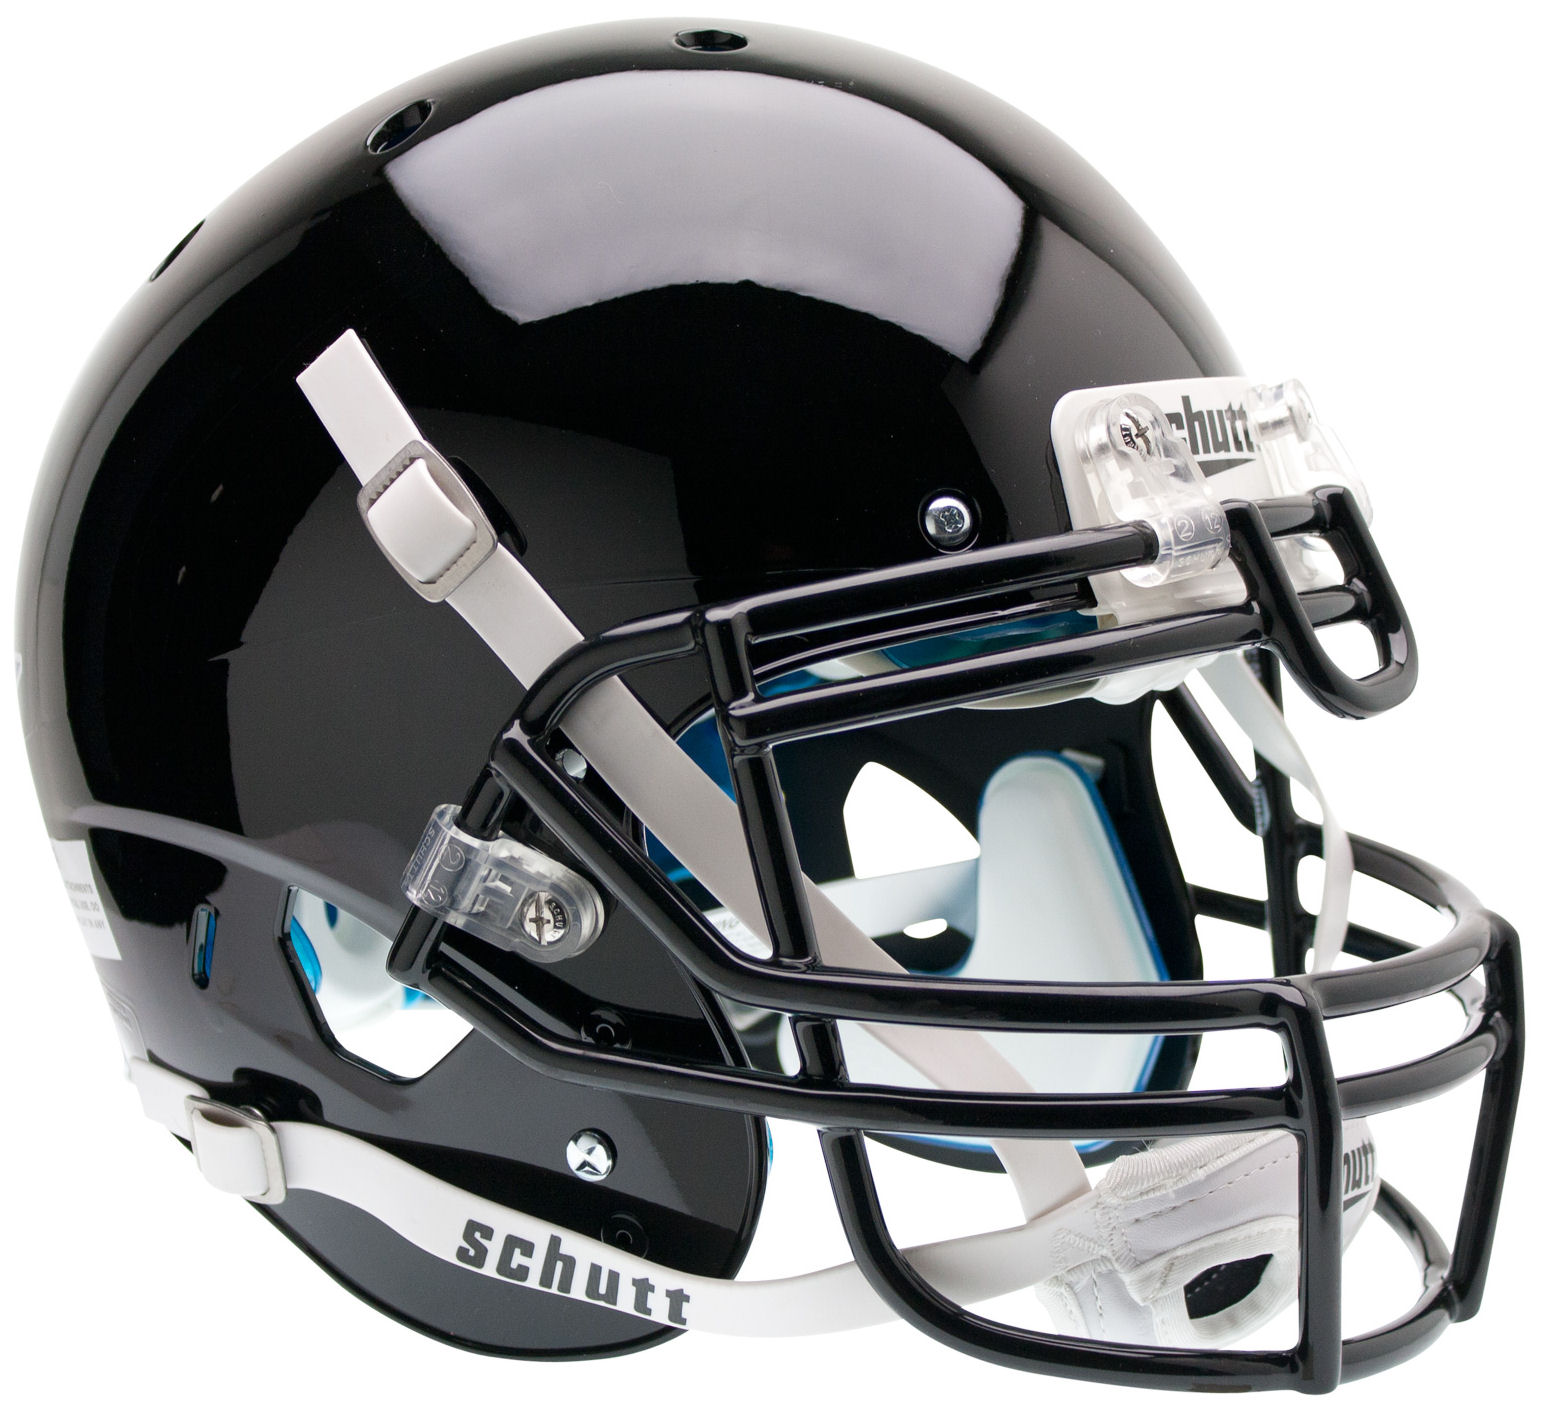 Army Black Knights Authentic College XP Football Helmet Schutt <B>Black</B>